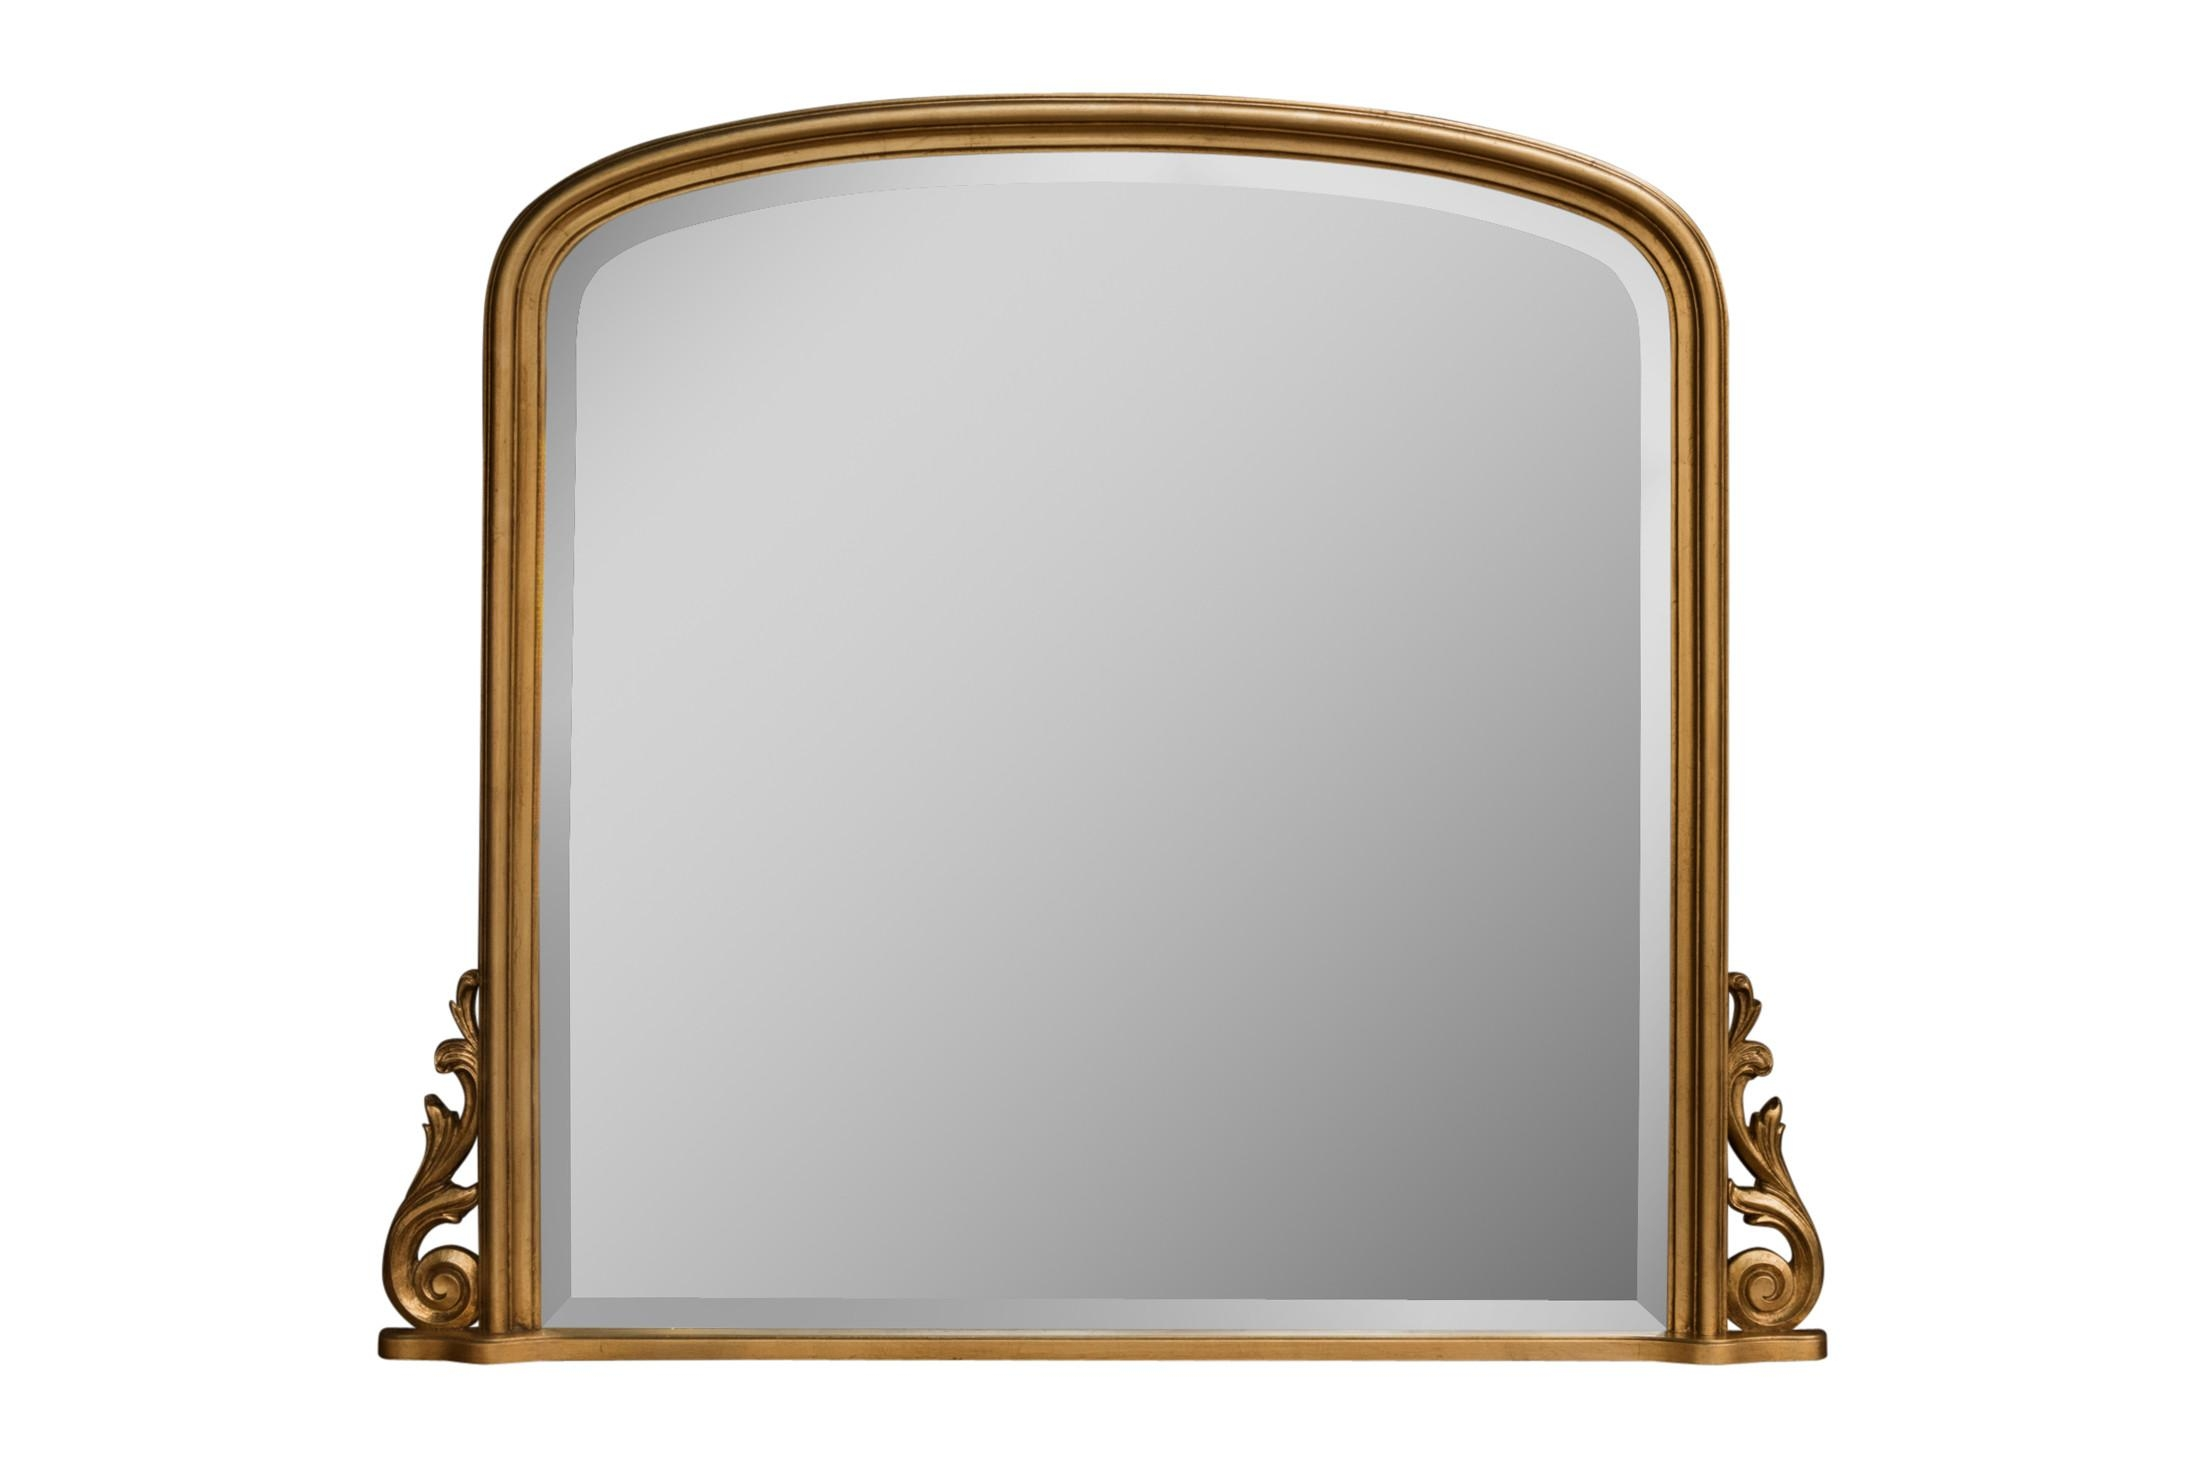 Libov4 Gold Overmantel | Gold Mirrors For Sale – Panfili Mirrors Throughout Gold Arch Mirror (Image 12 of 20)